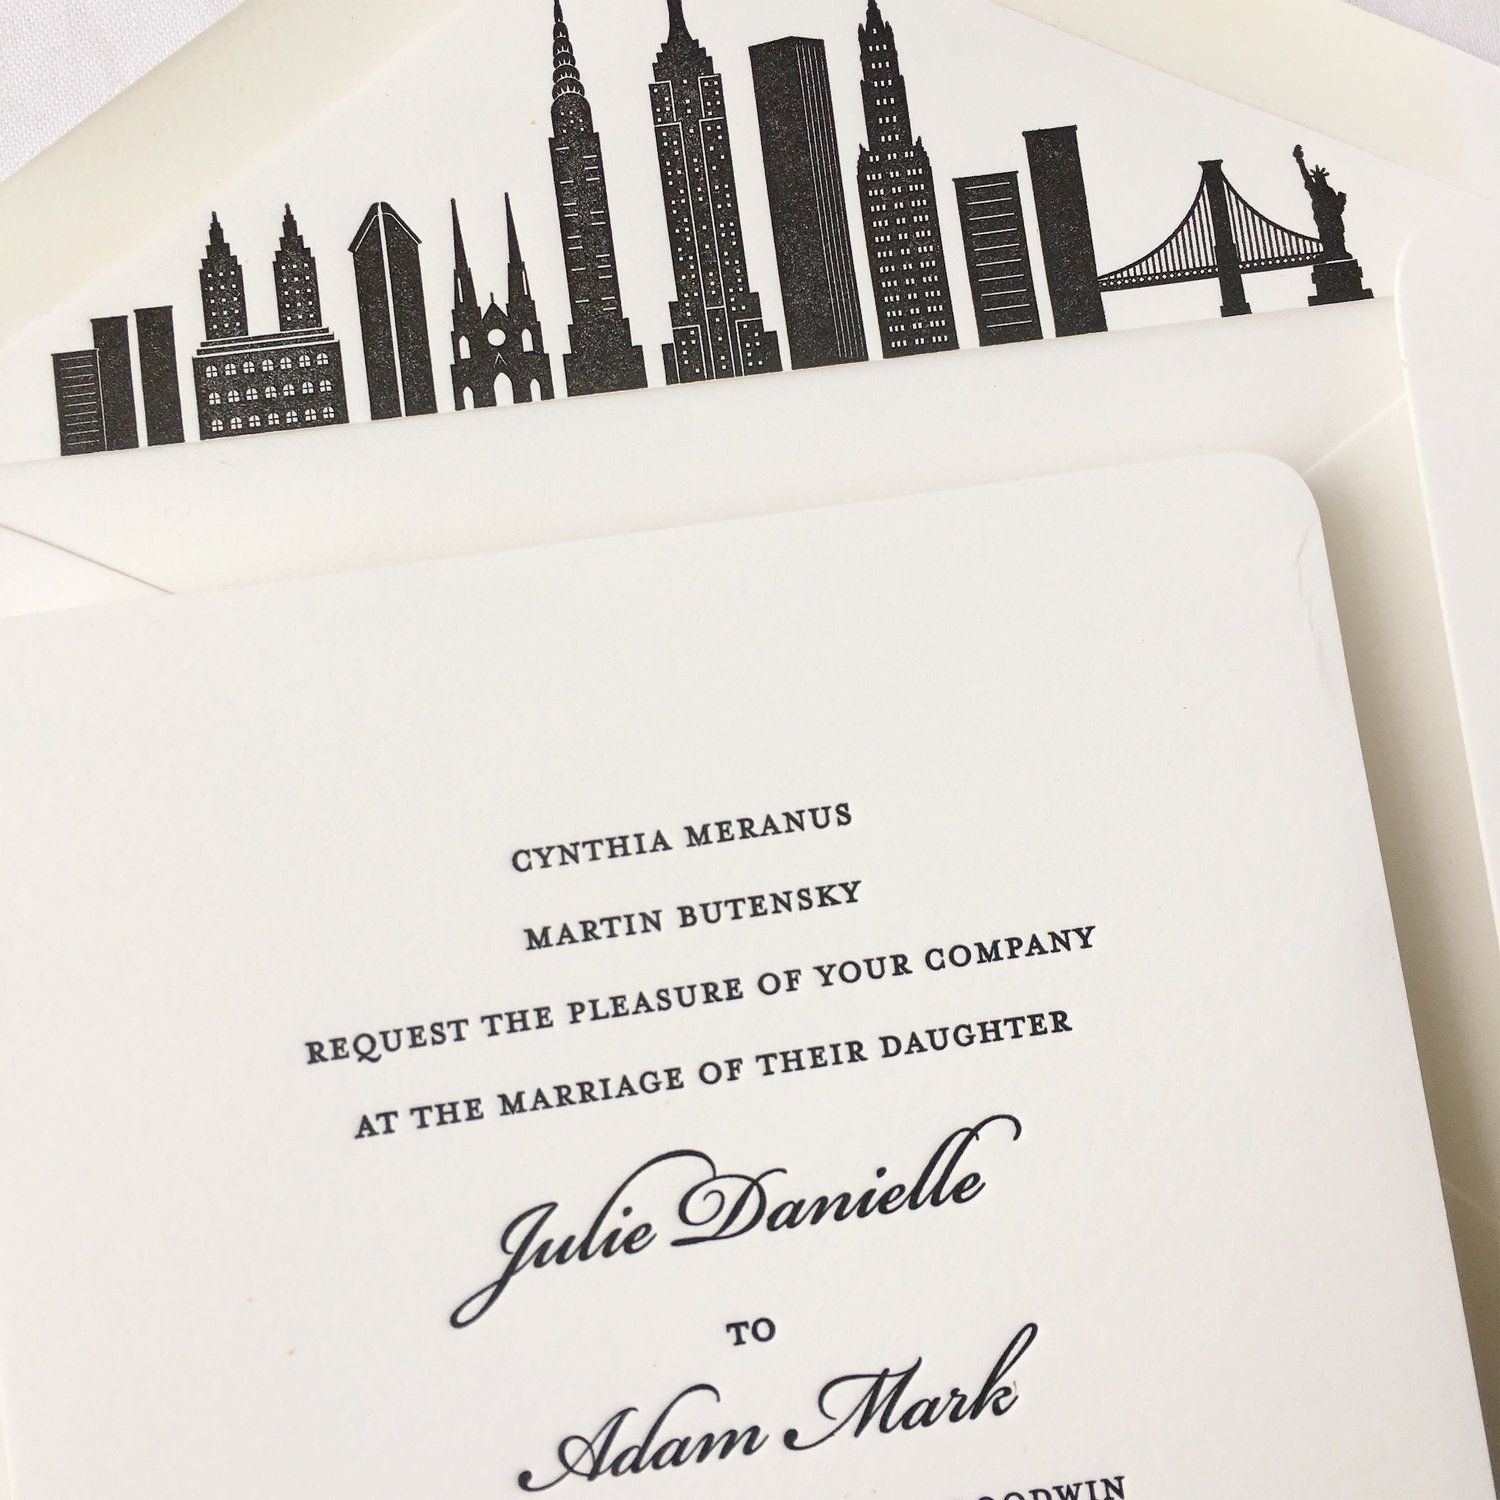 Timeless Wedding Invitations In Black With A Custom Envelope Liner Featuring An Ny Timeless Wedding Invitations City Wedding Invitations Custom Envelope Liners